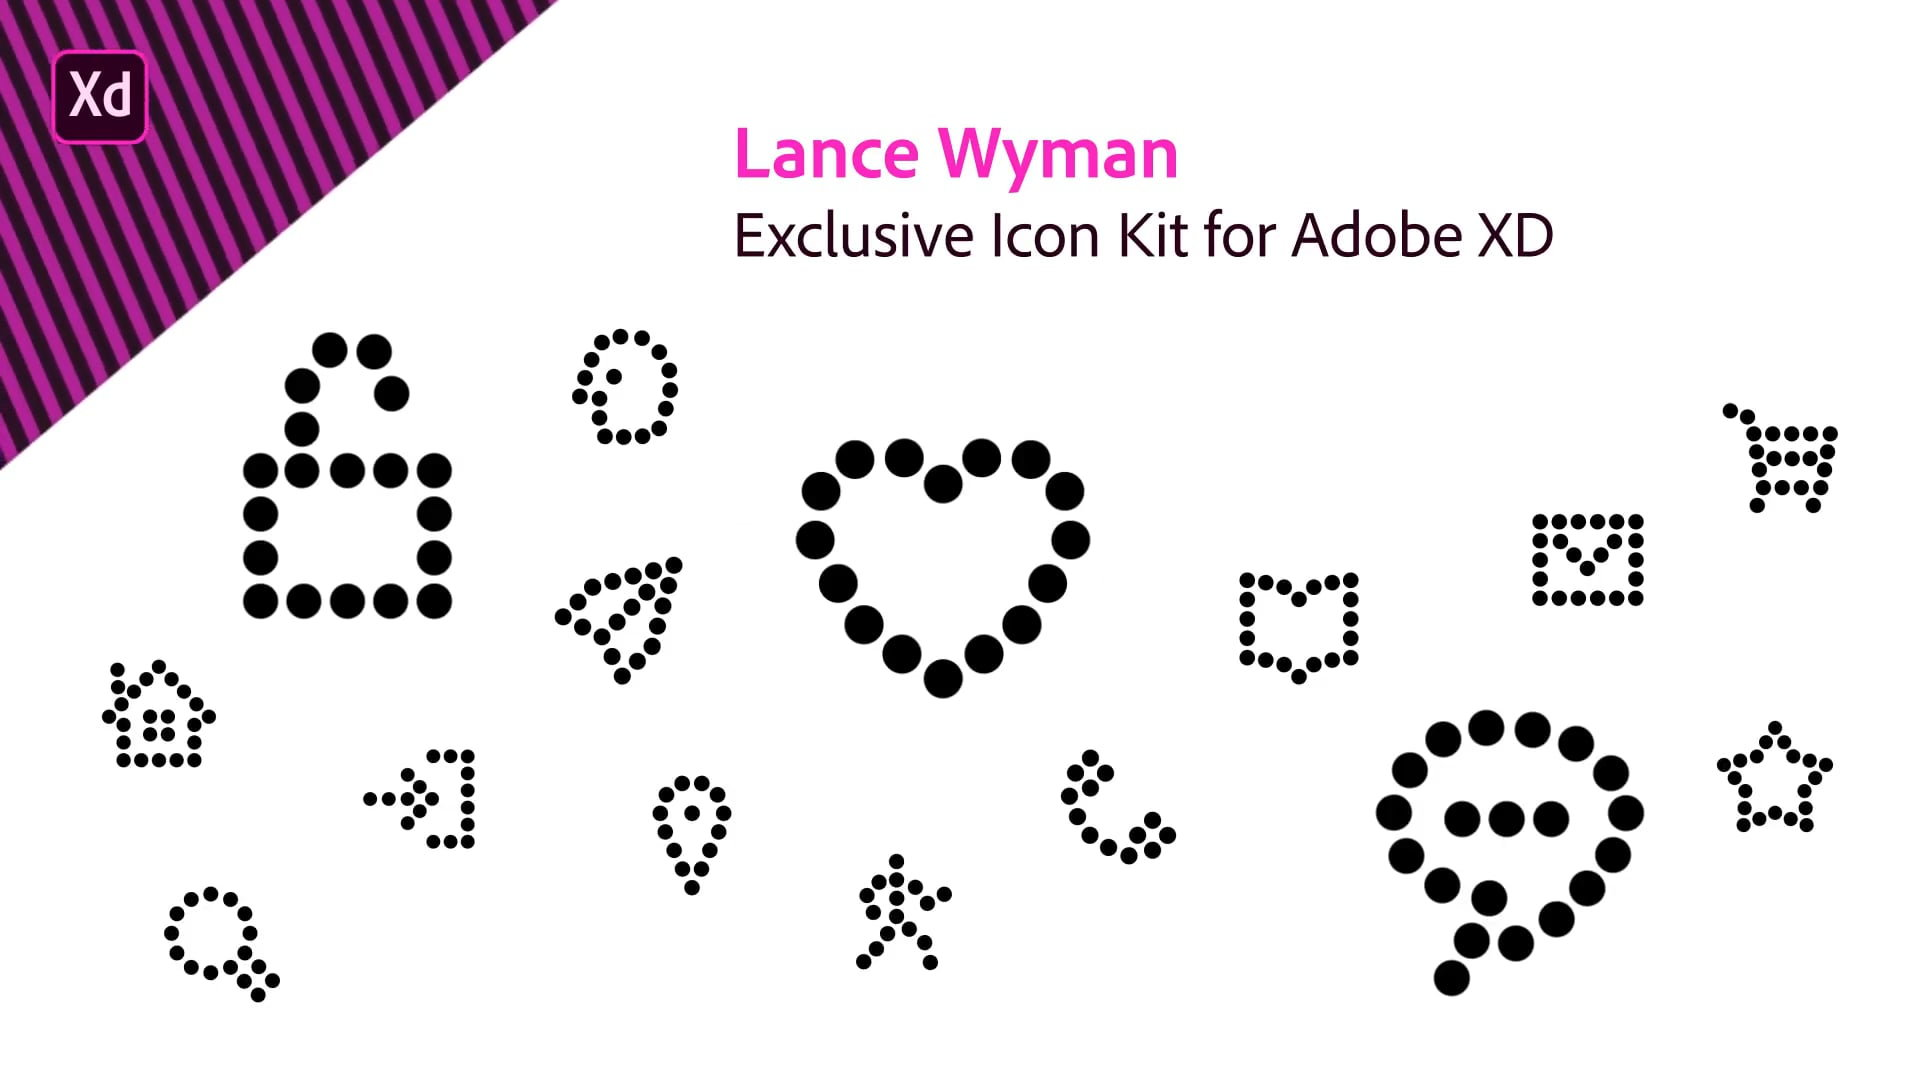 Free Icon Kits for Adobe XD CC